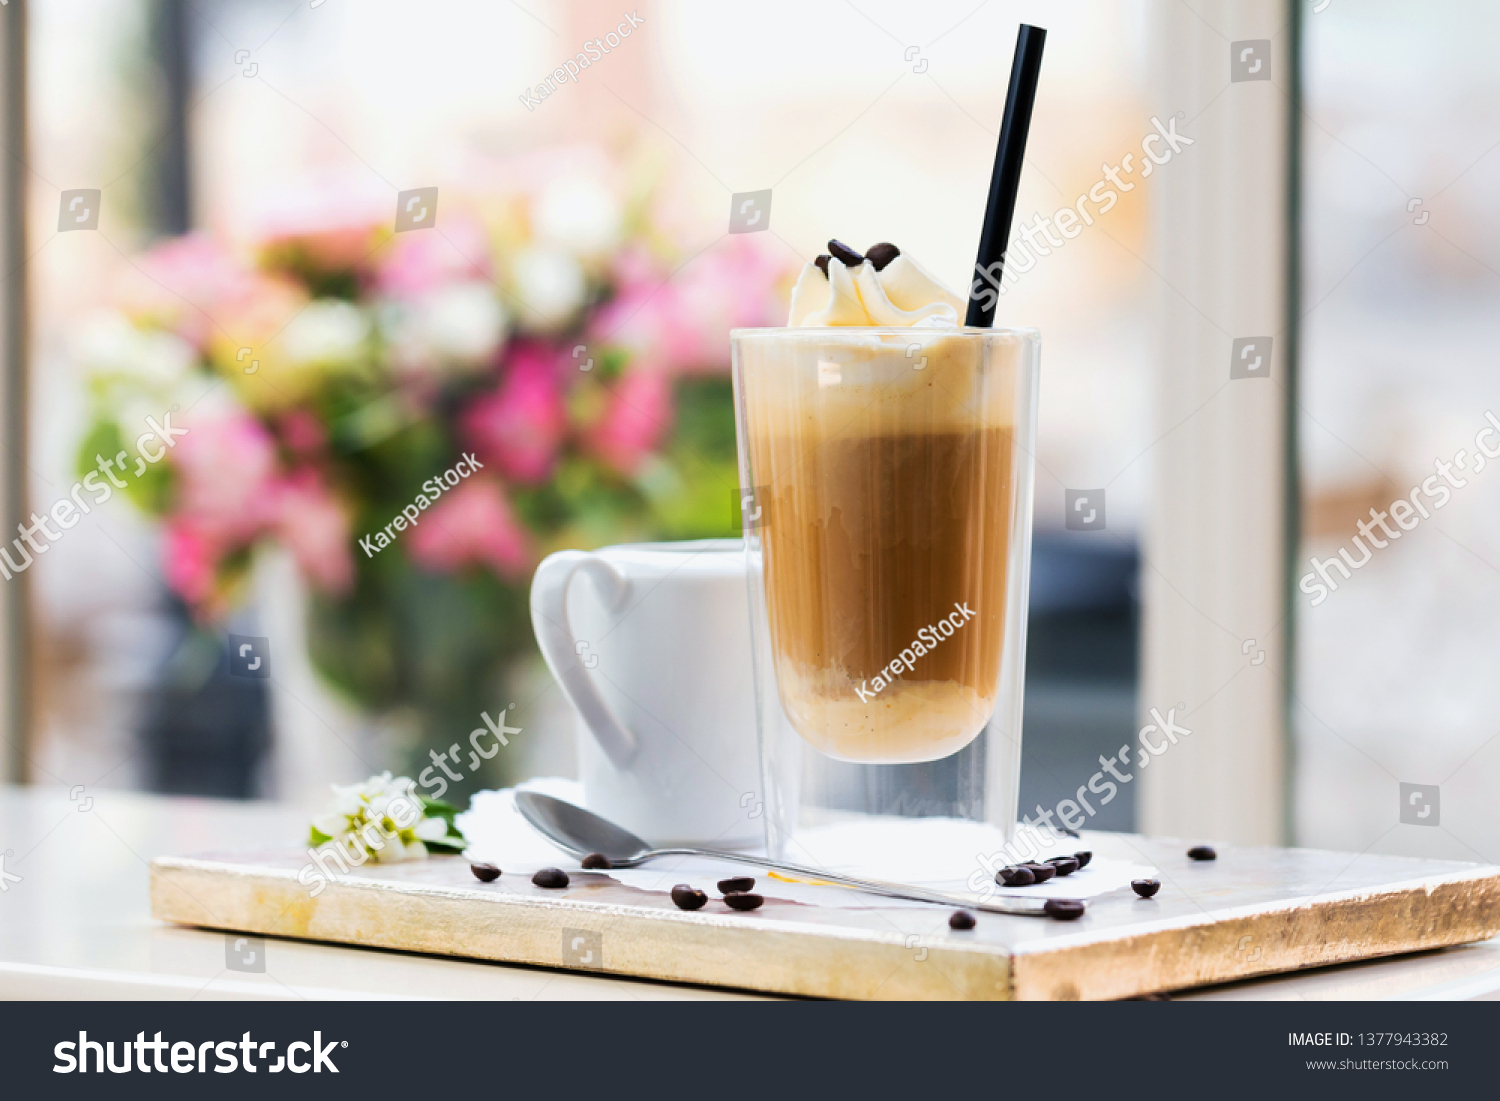 Marmortisch Cafe Affogato Coffee Ice Cream On Cup Stock Photo Edit Now 1377943382